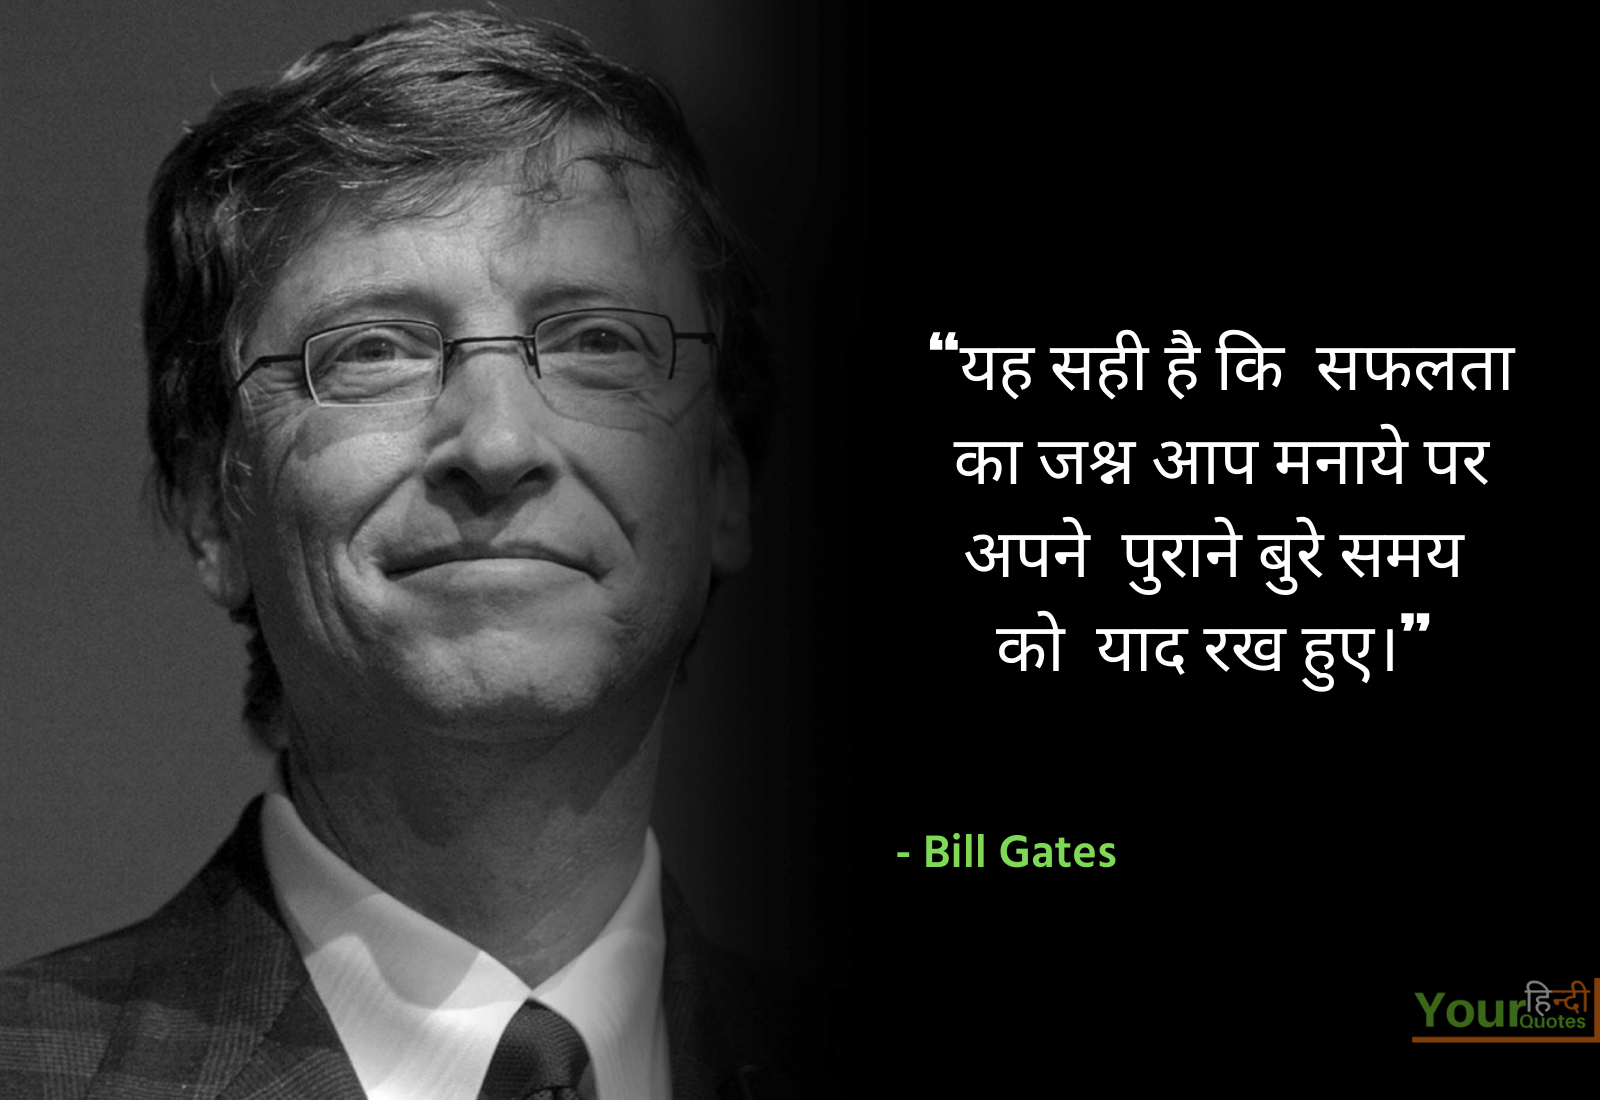 Bill Gates Hindi Quote Images